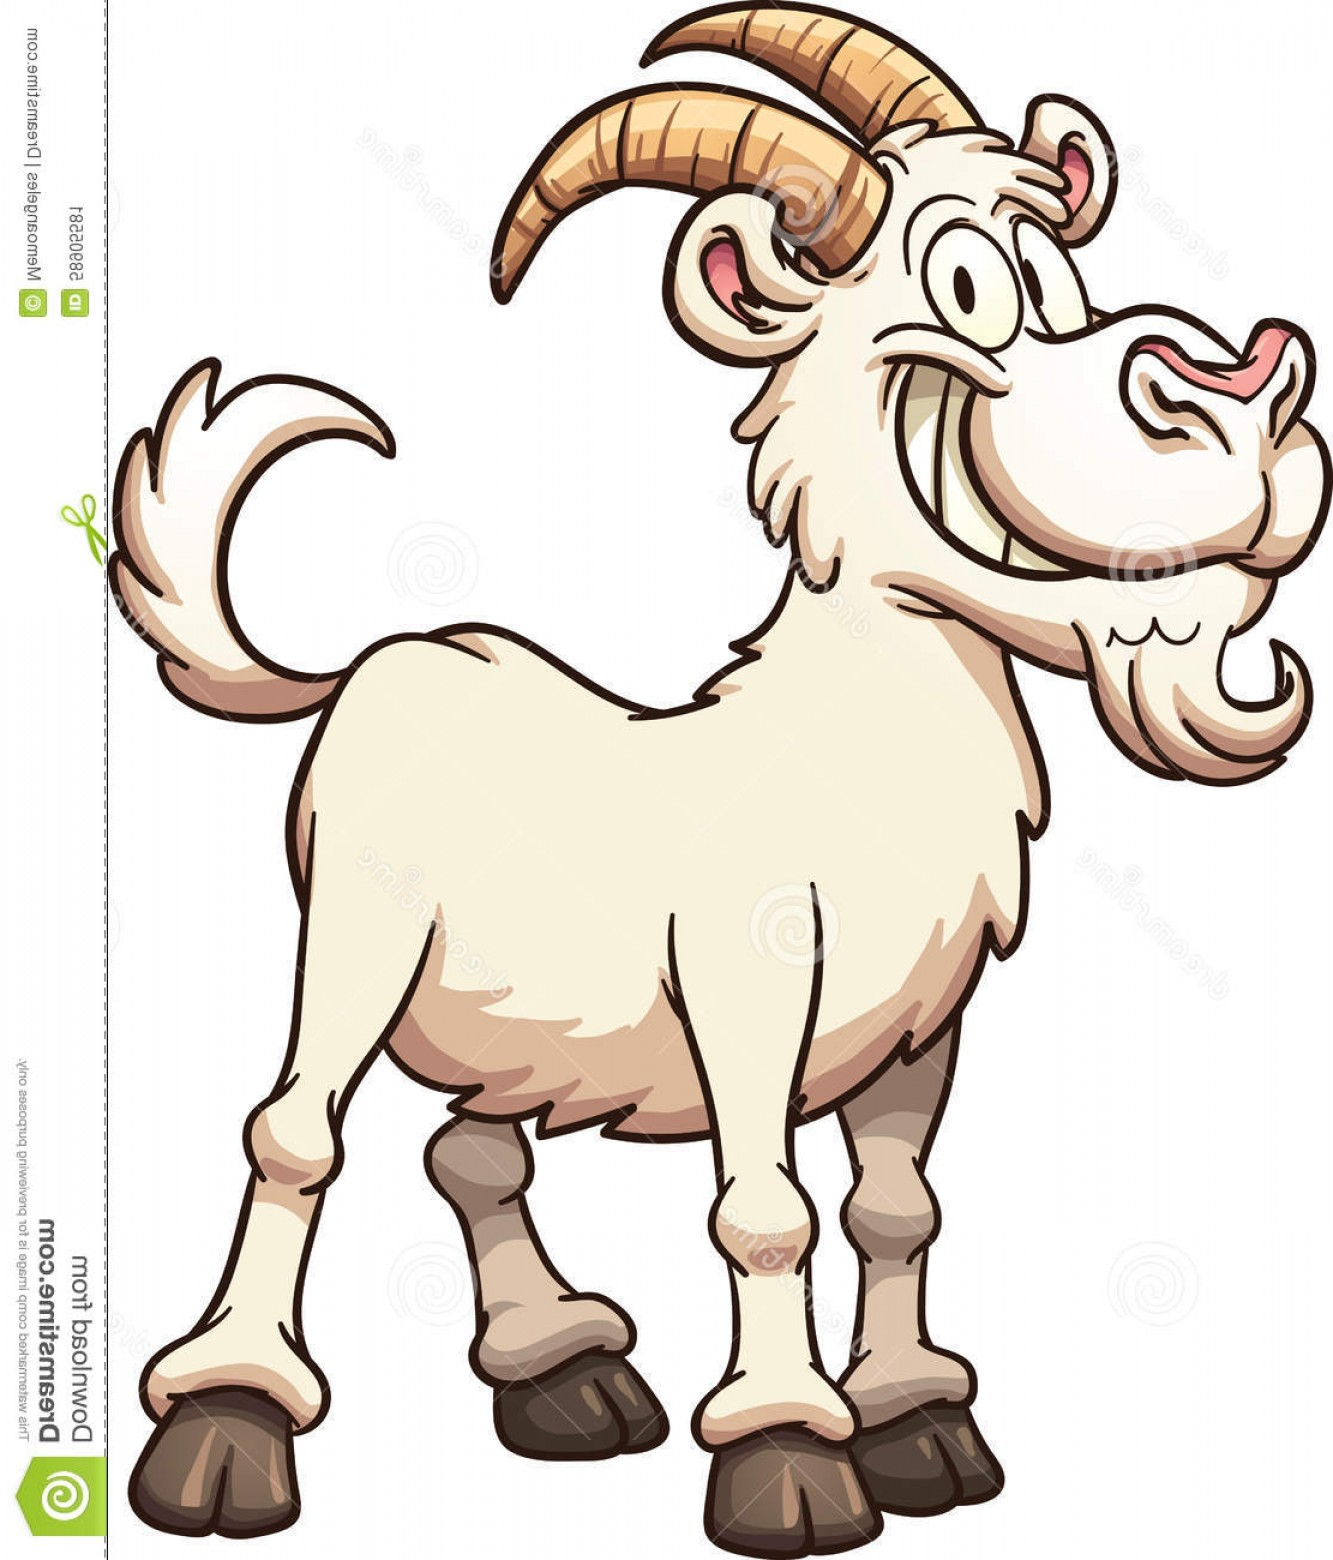 Goat vector clipart svg royalty free library Stock Illustration Cartoon Goat Happy Vector Clip Art Illustration ... svg royalty free library